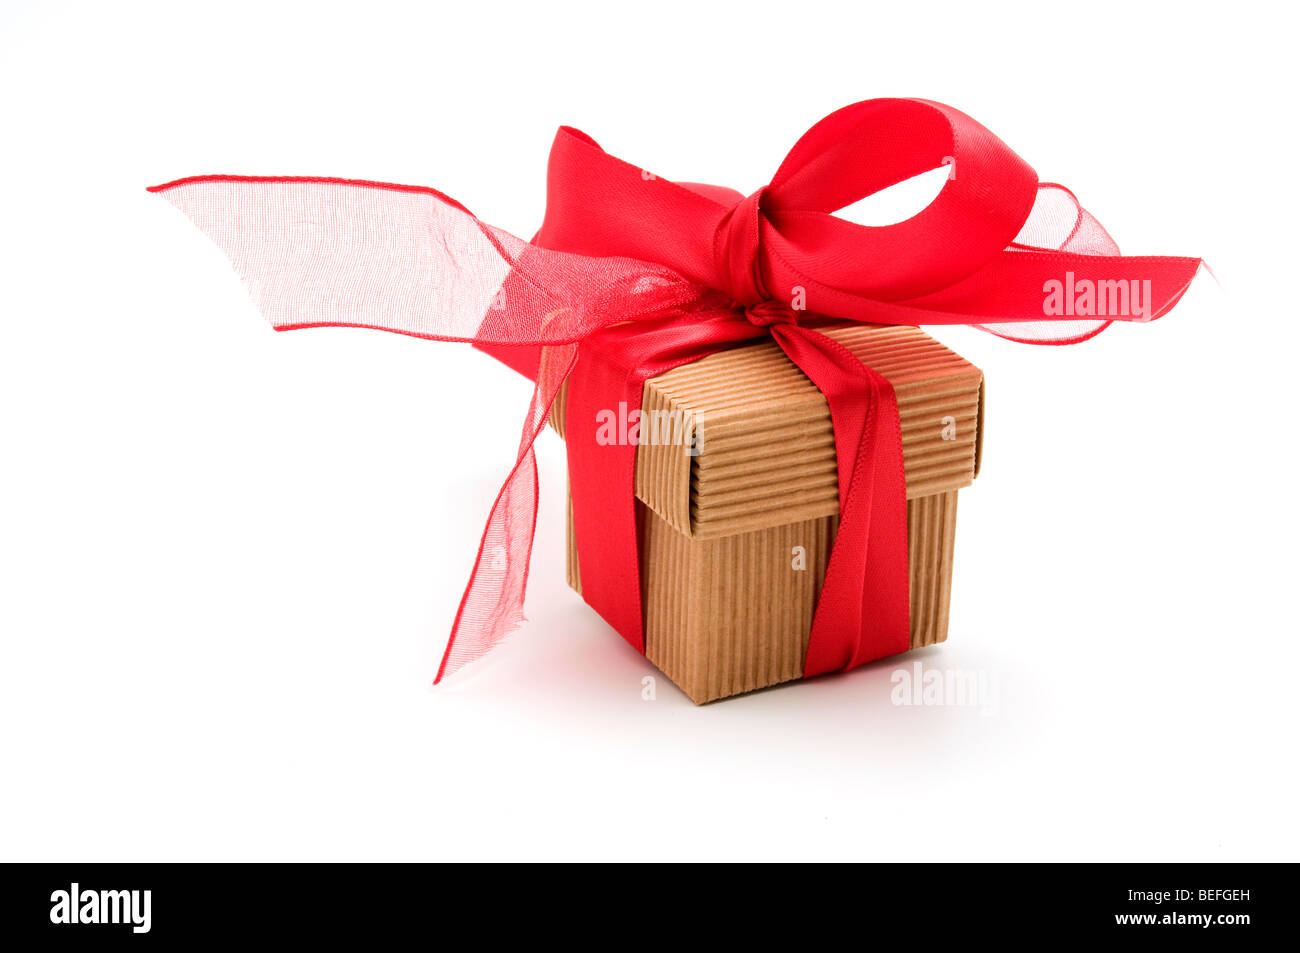 Gift box on a white background - Stock Image